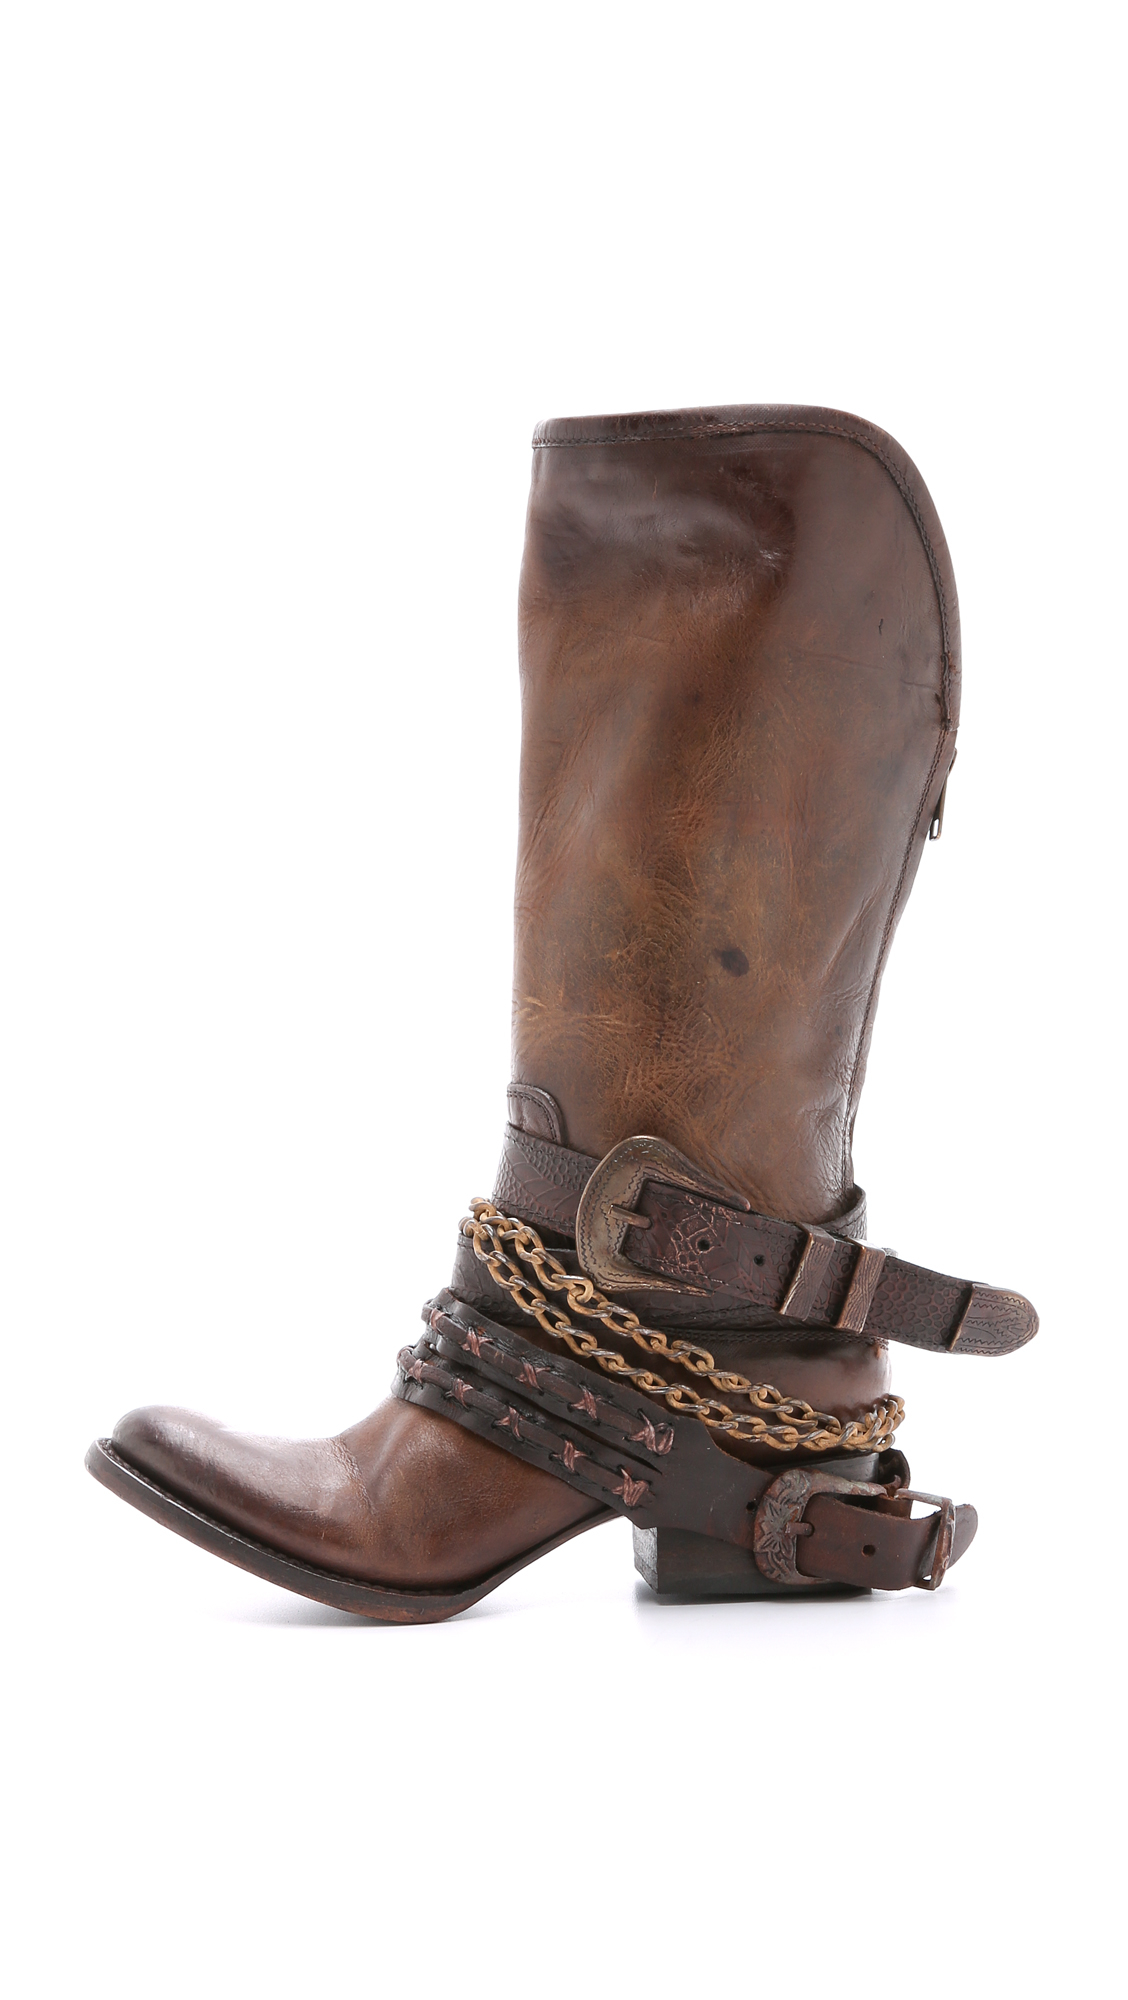 Zip Line Harness >> Freebird by Steven Knox Harness Tall Boots - Brown - Lyst